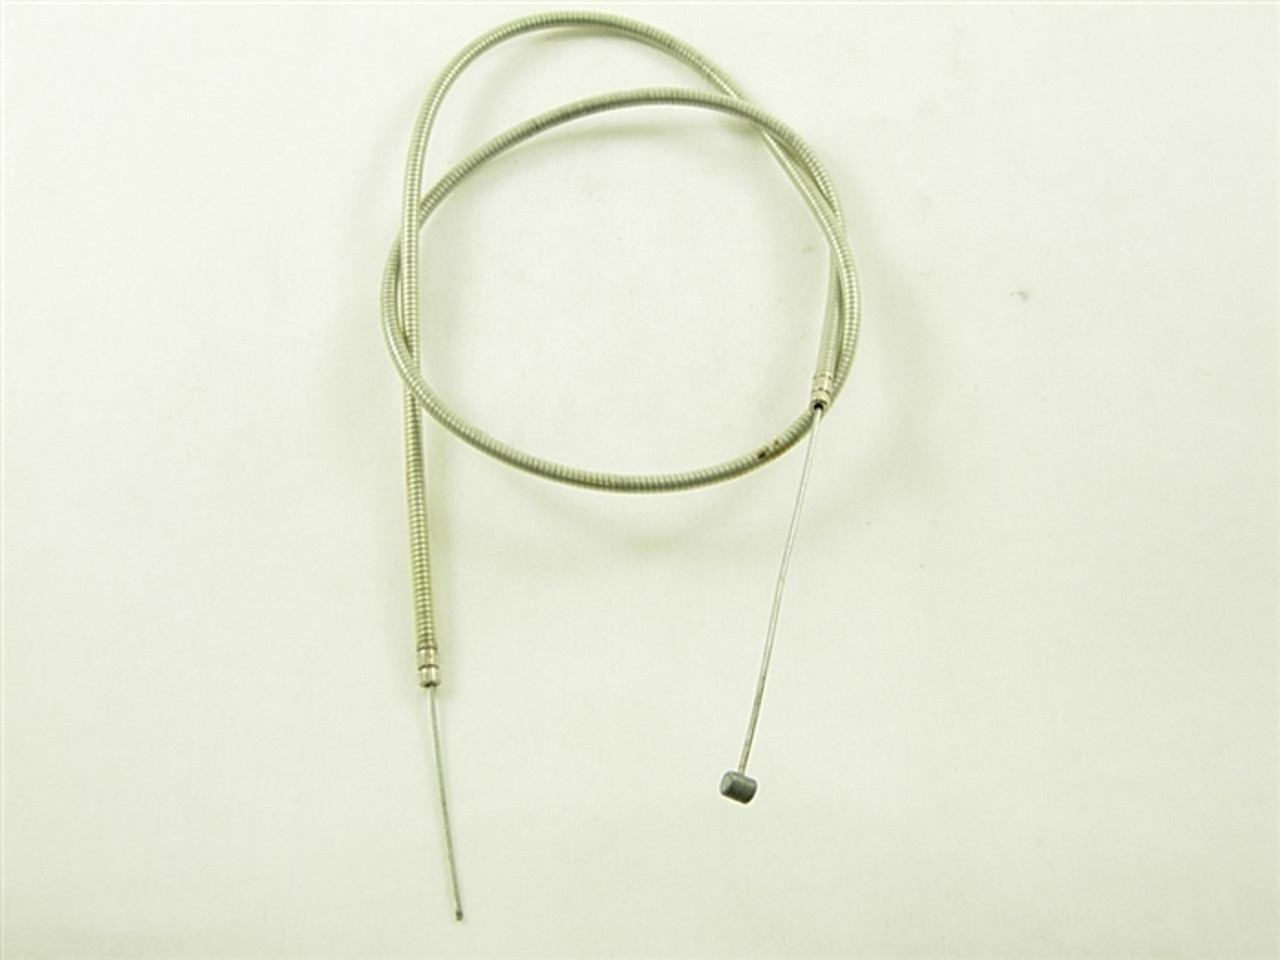 CABLE 12131-A119-7